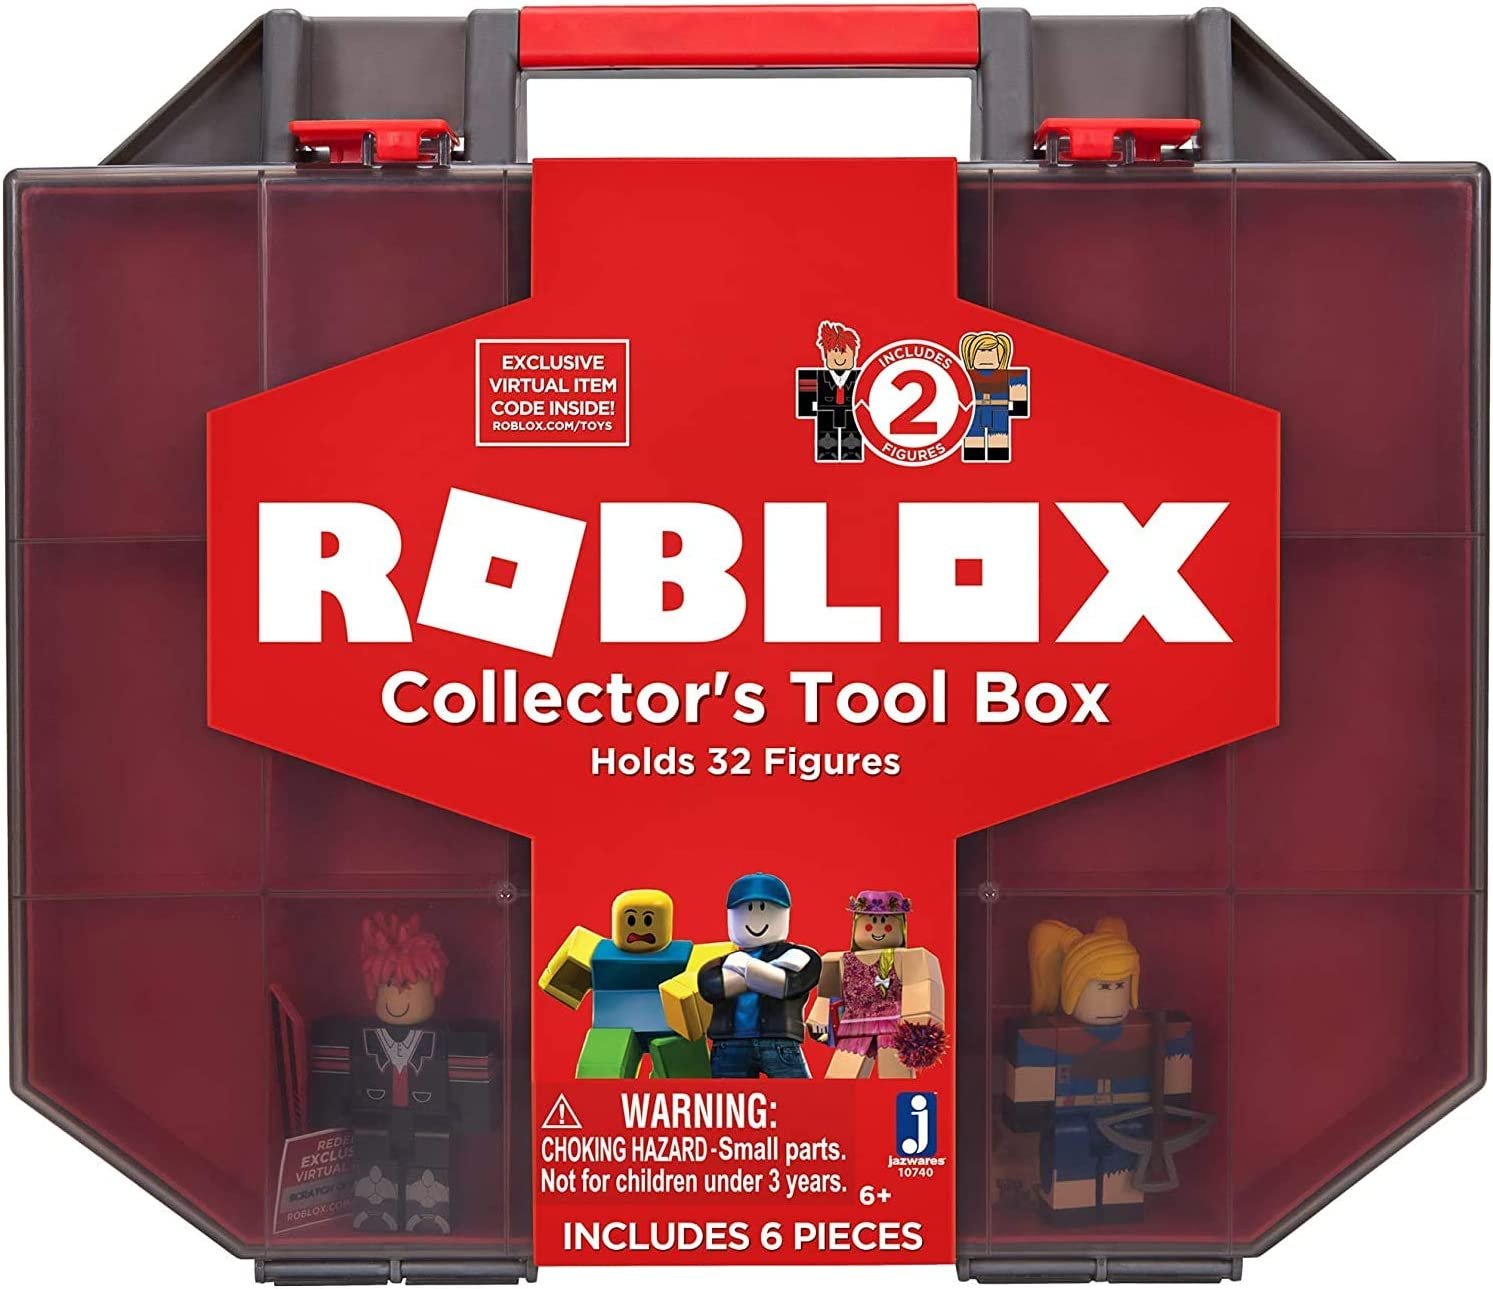 Two Music Boxes Roblox Id Amazon Com Roblox Action Collection Collector S Tool Box And Carry Case That Holds 32 Figures Includes Exclusive Virtual Item Amazon Exclusive Toys Games